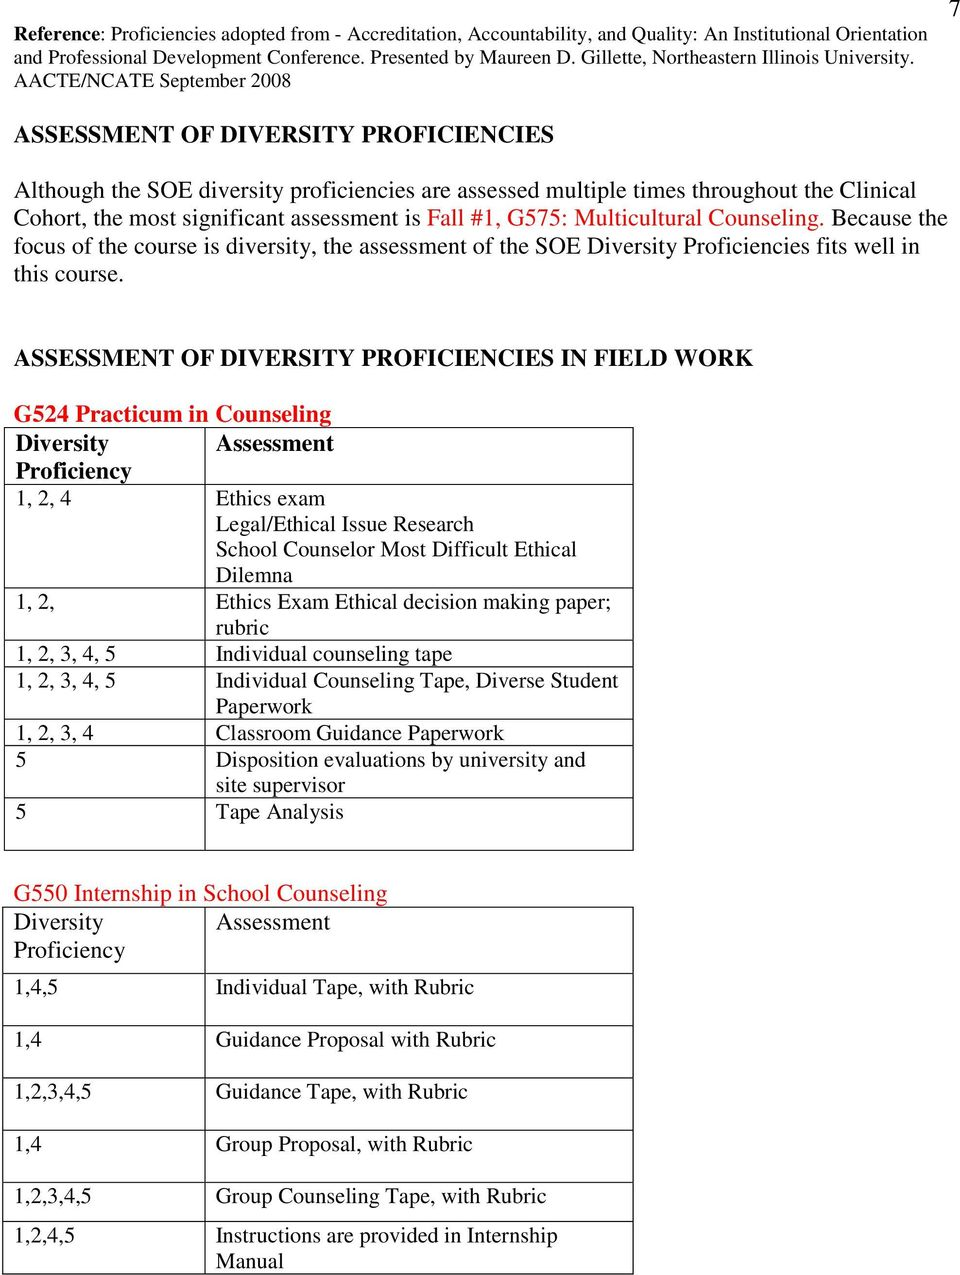 AACTE/NCATE September 2008 7 ASSESSMENT OF DIVERSITY PROFICIENCIES Although the SOE diversity proficiencies are assessed multiple times throughout the Clinical Cohort, the most significant assessment